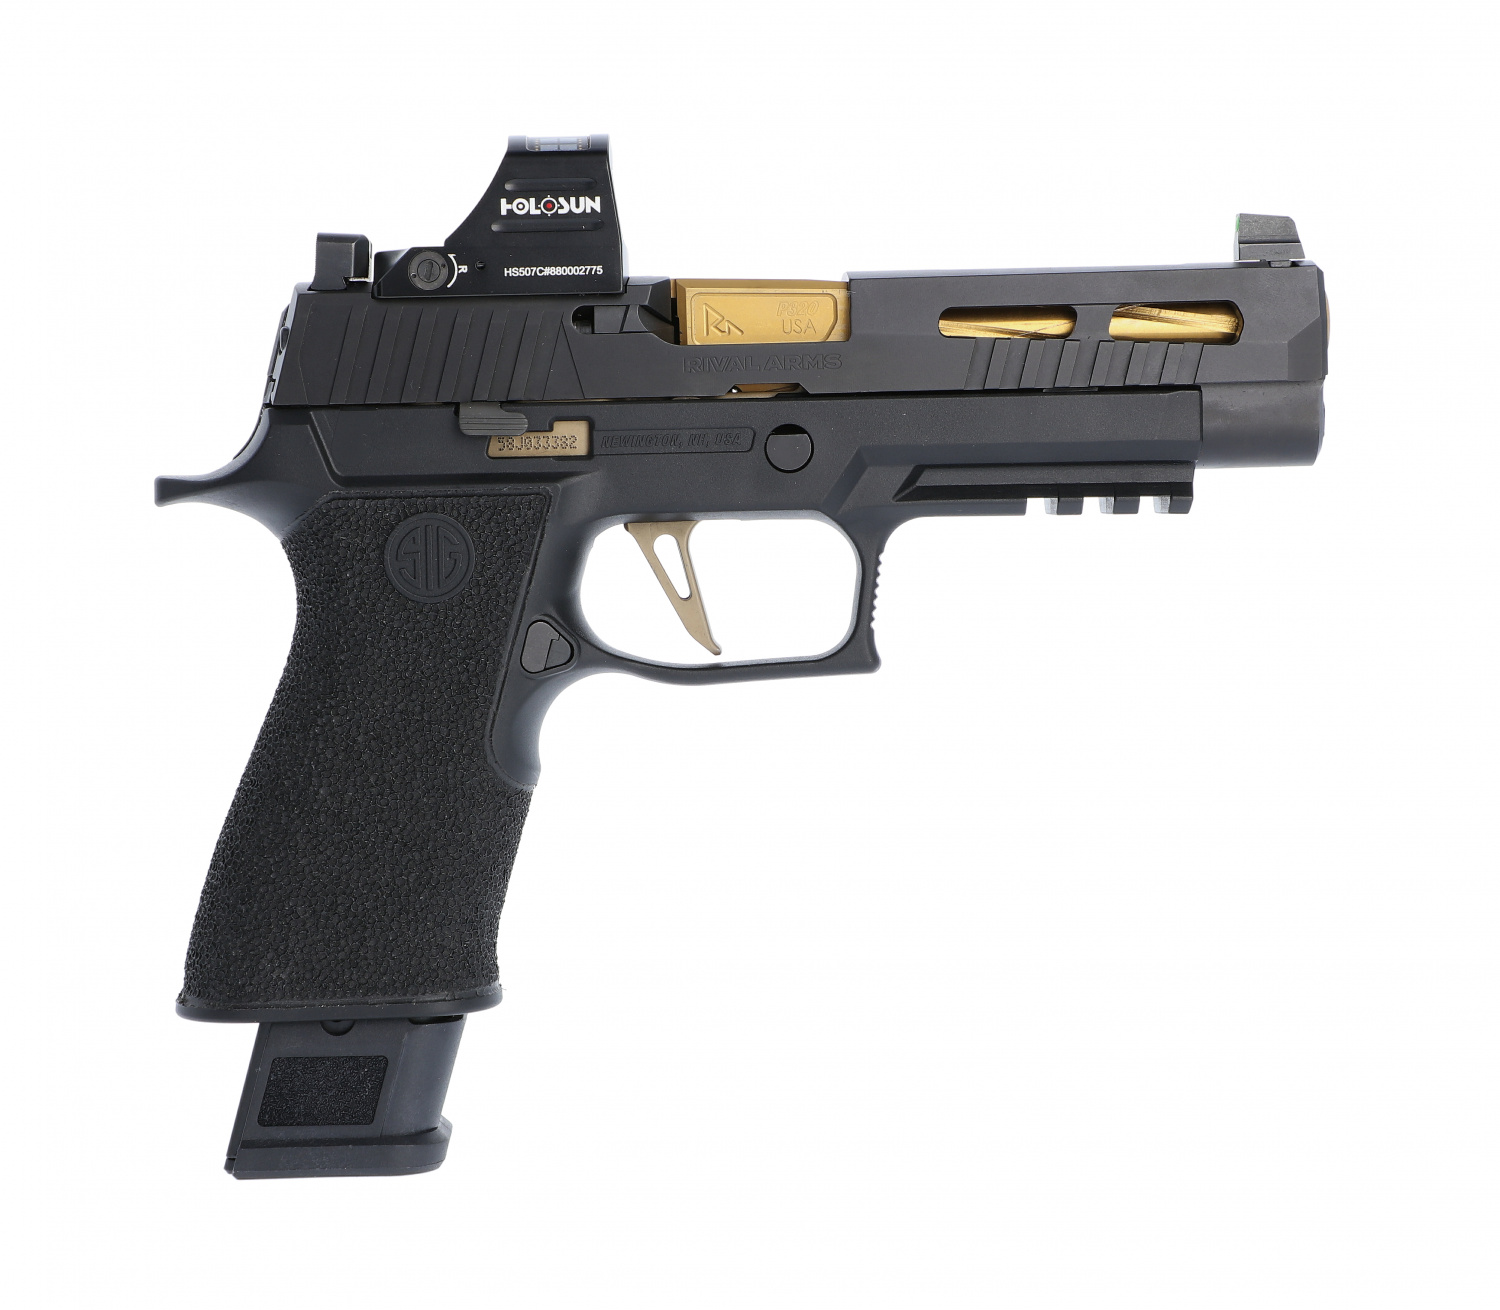 If you like Gucci Glock-style upgrades but you prefer to shoot Sigs, the market's supply is responding to your demand.